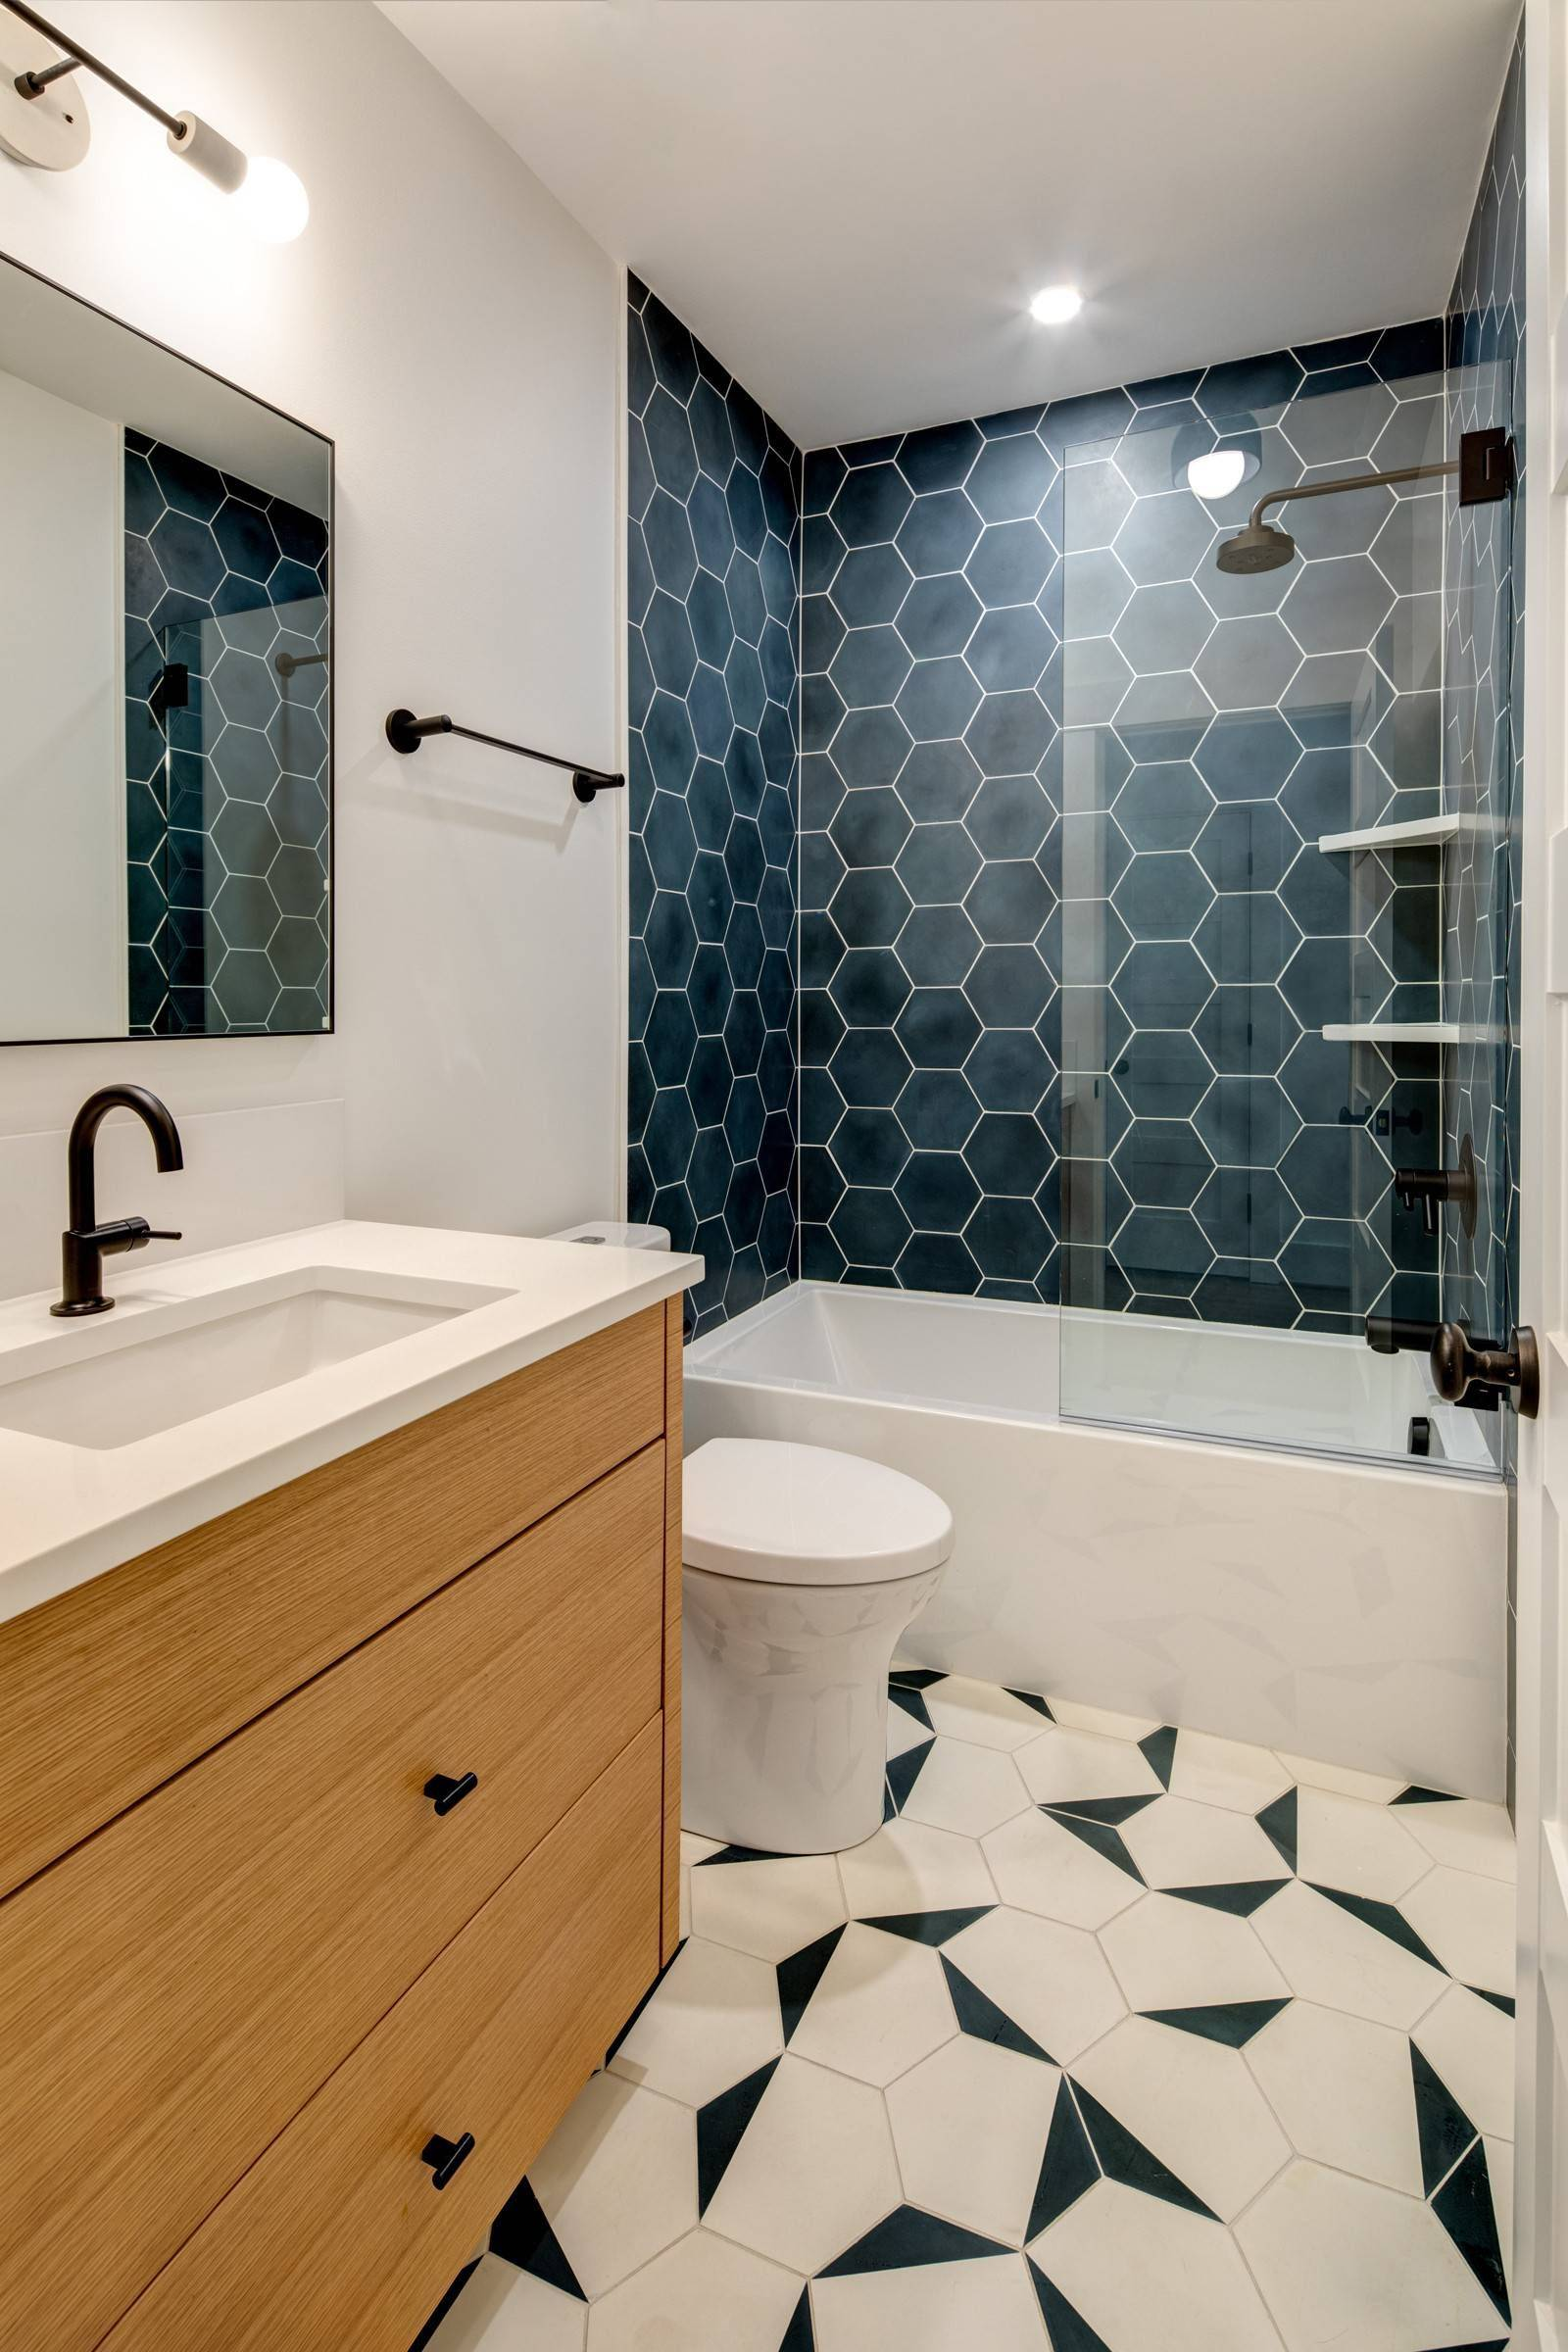 Bathroom-filled-with-pattern-is-a-hot-trend-this-season-41506